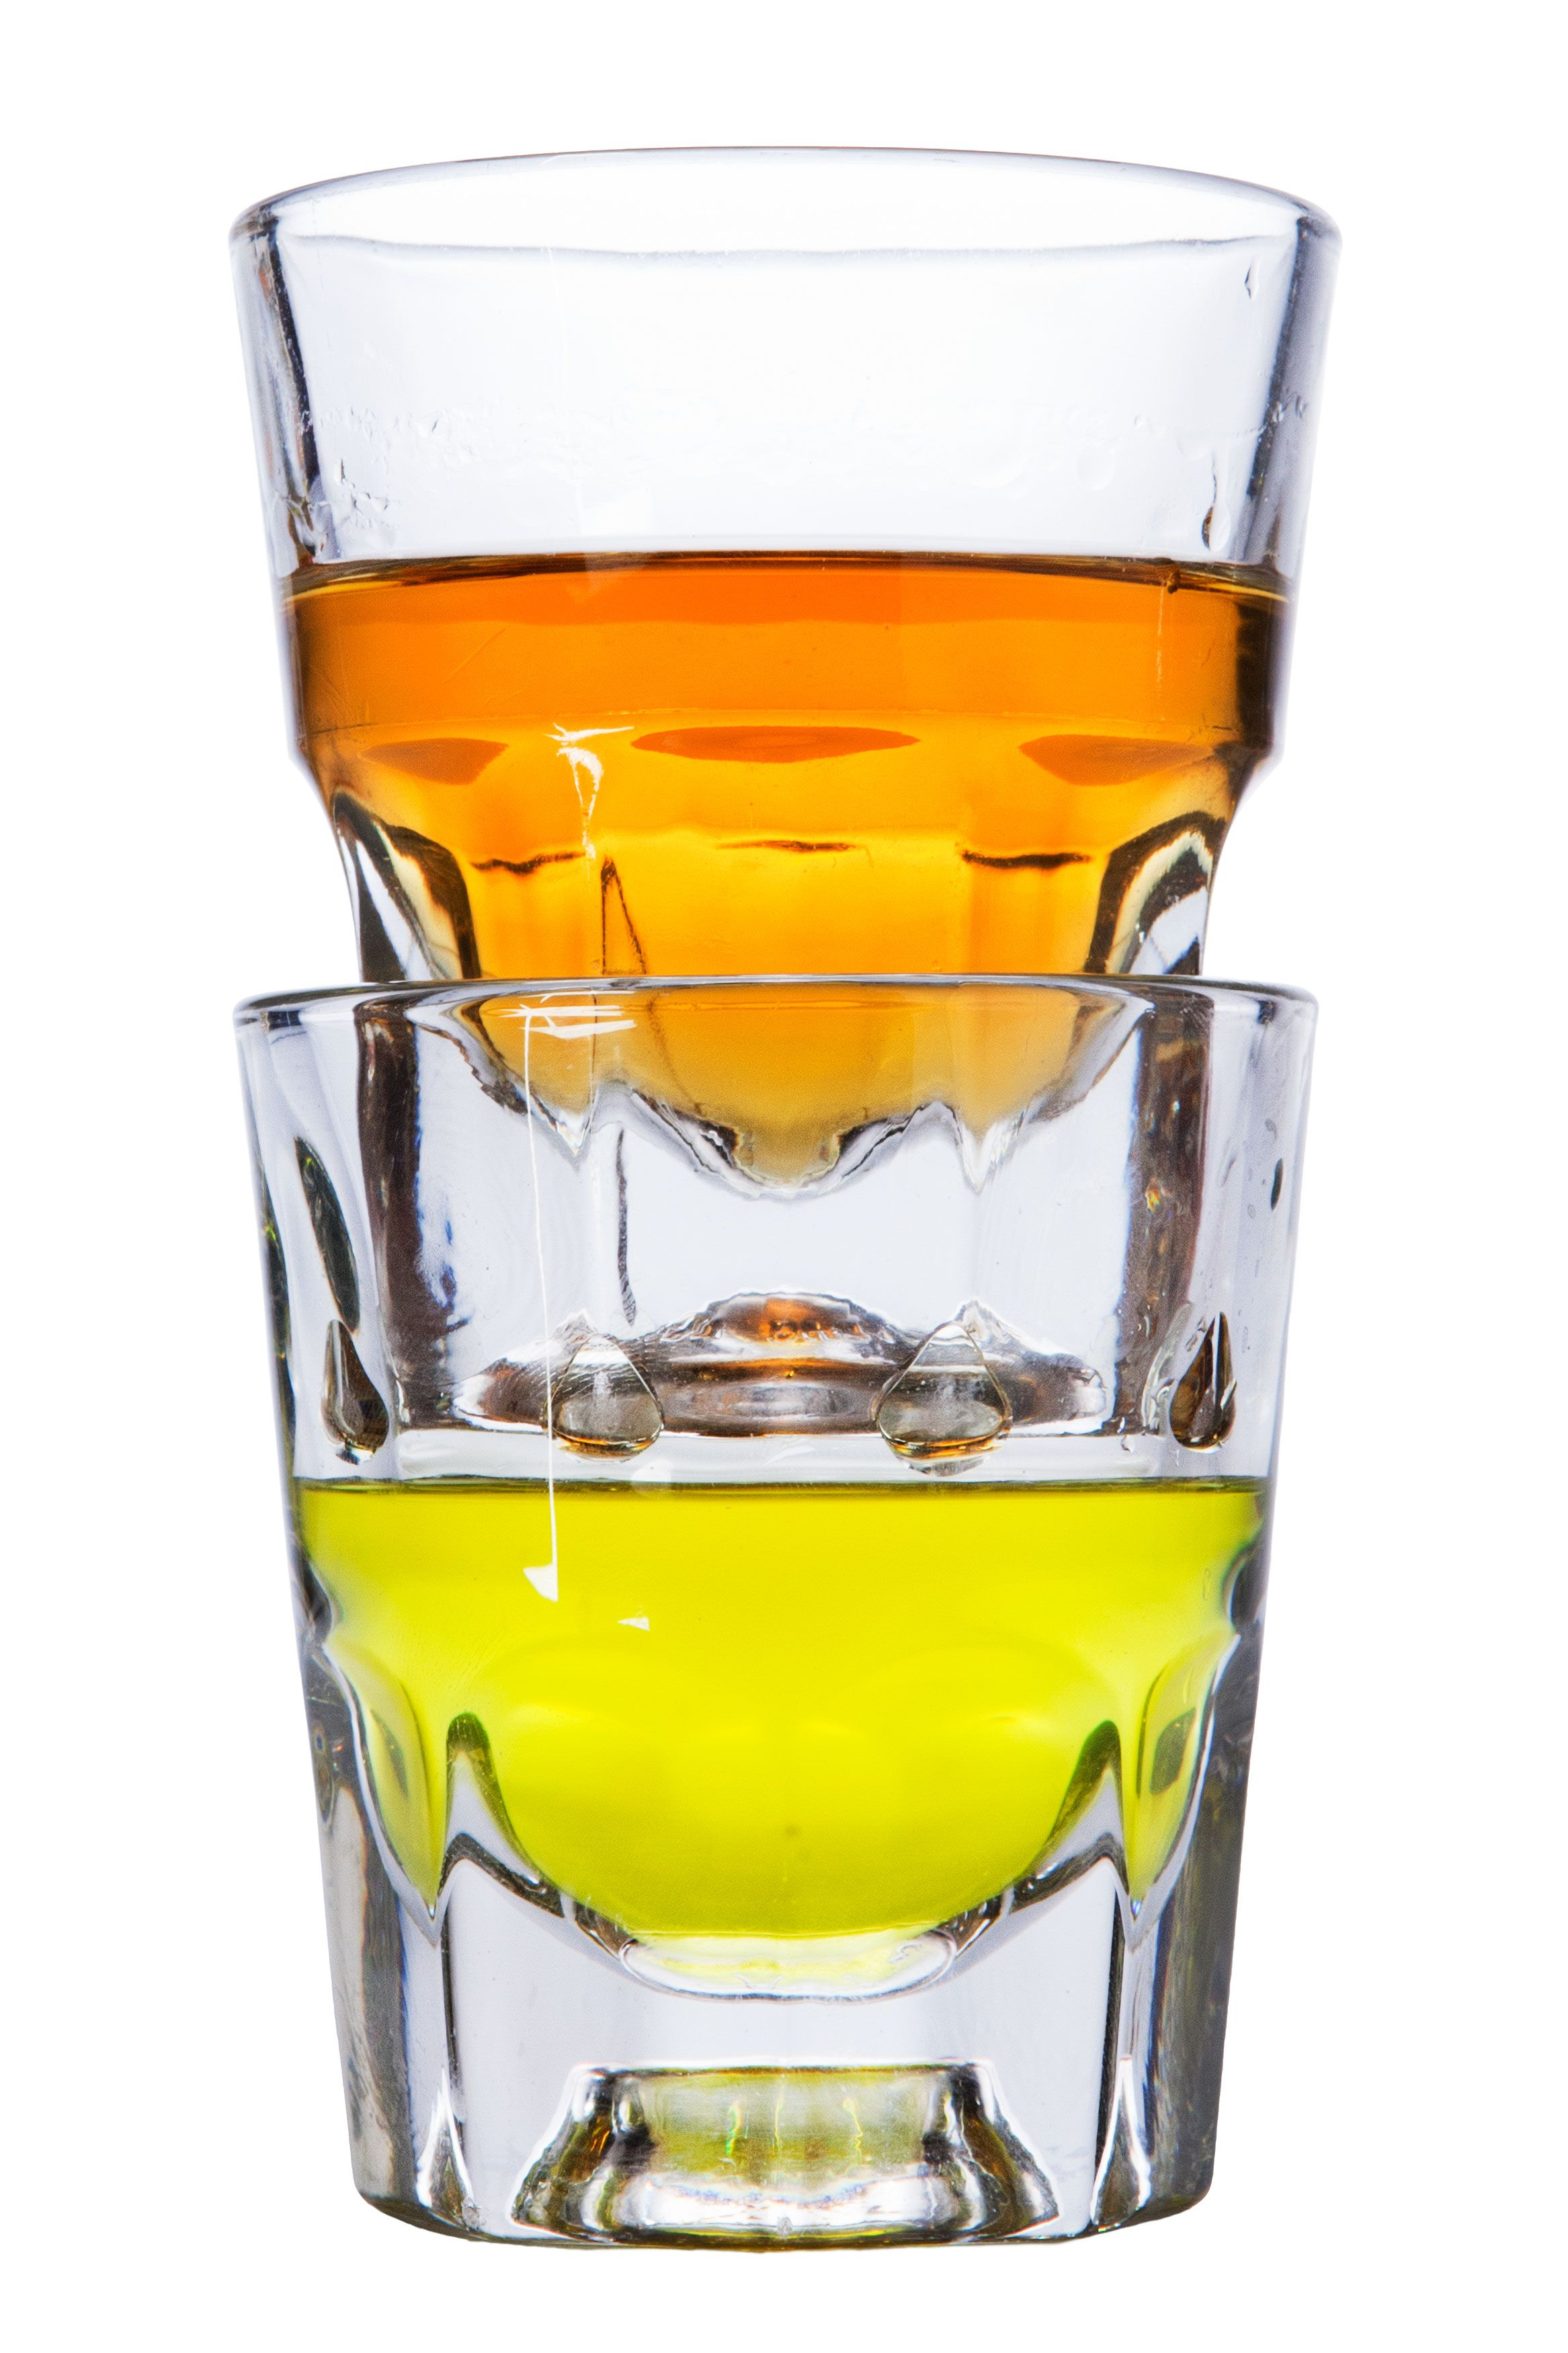 A shot of jameson followed by a shot of pickle juice